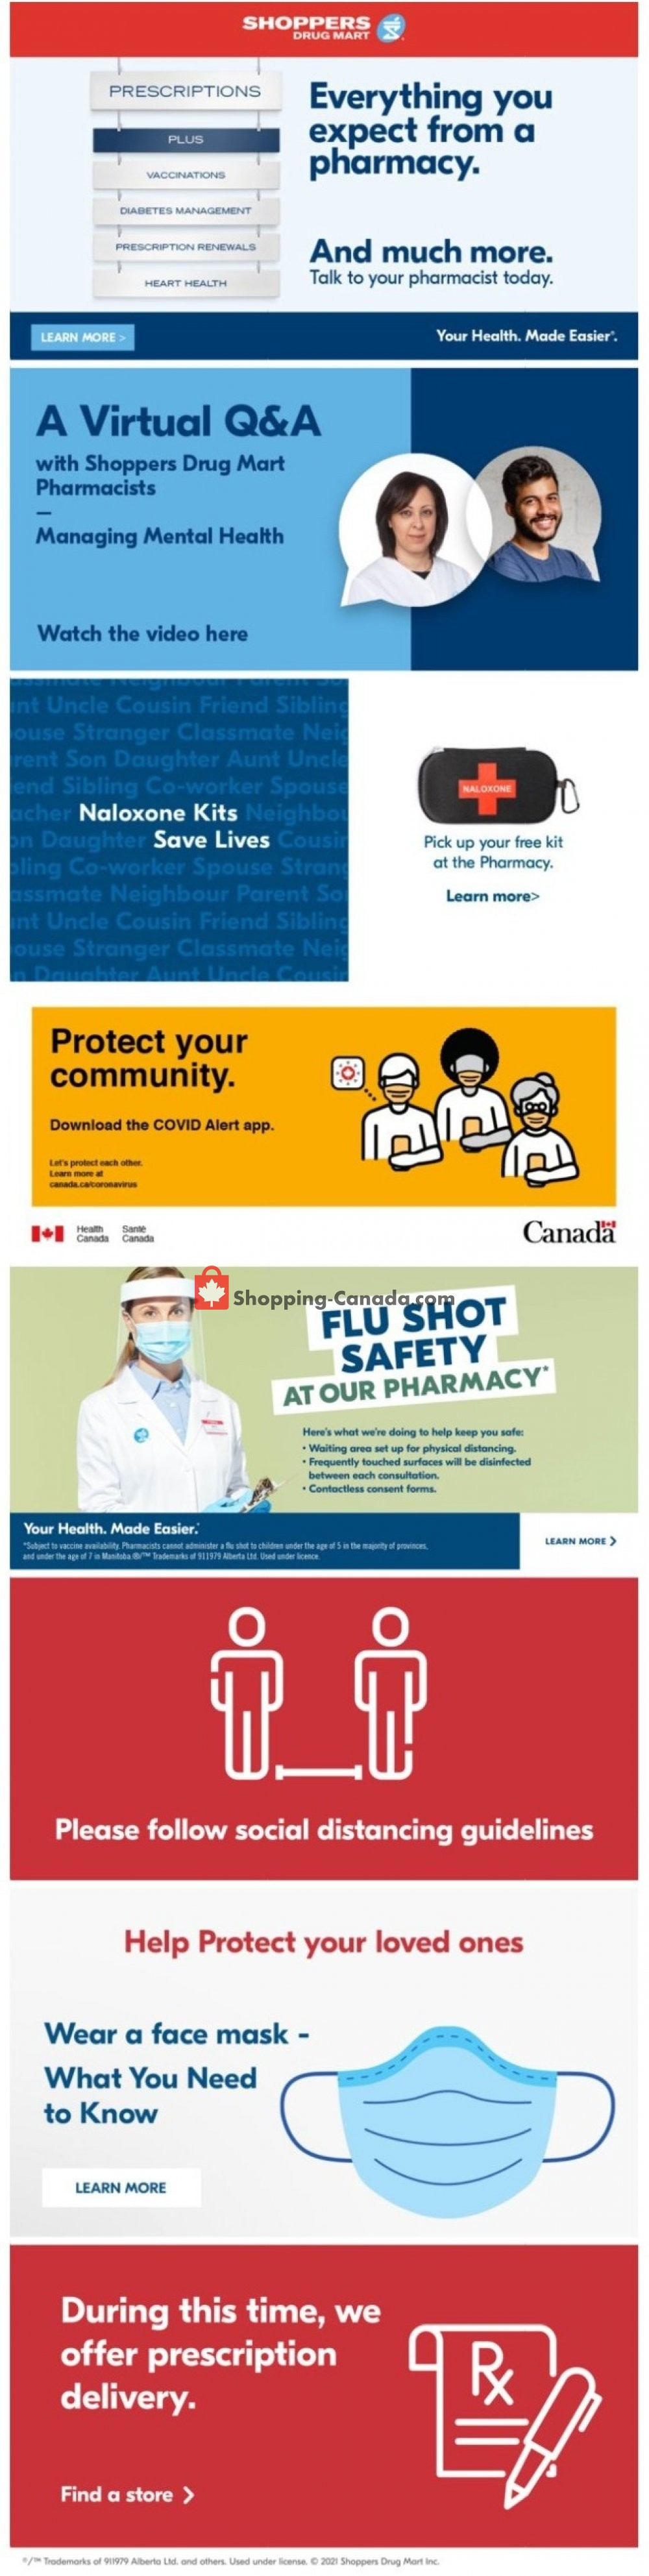 Flyer Shoppers Drug Mart Canada - from Saturday January 16, 2021 to Thursday January 21, 2021